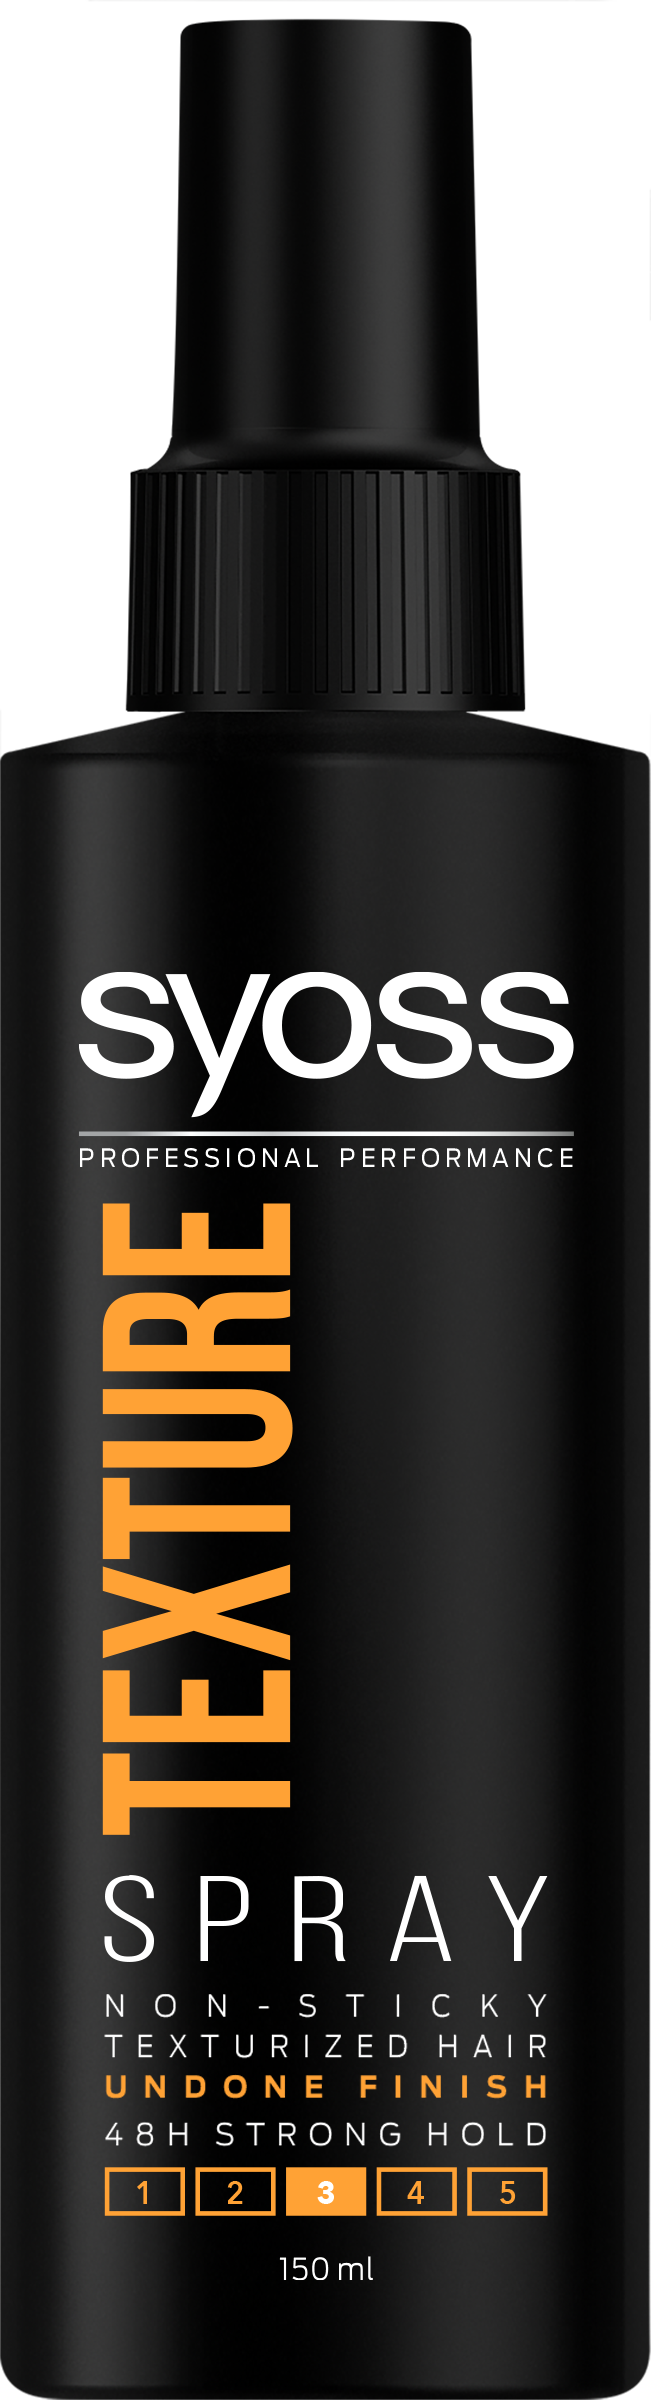 Syoss Texture Spray Setting